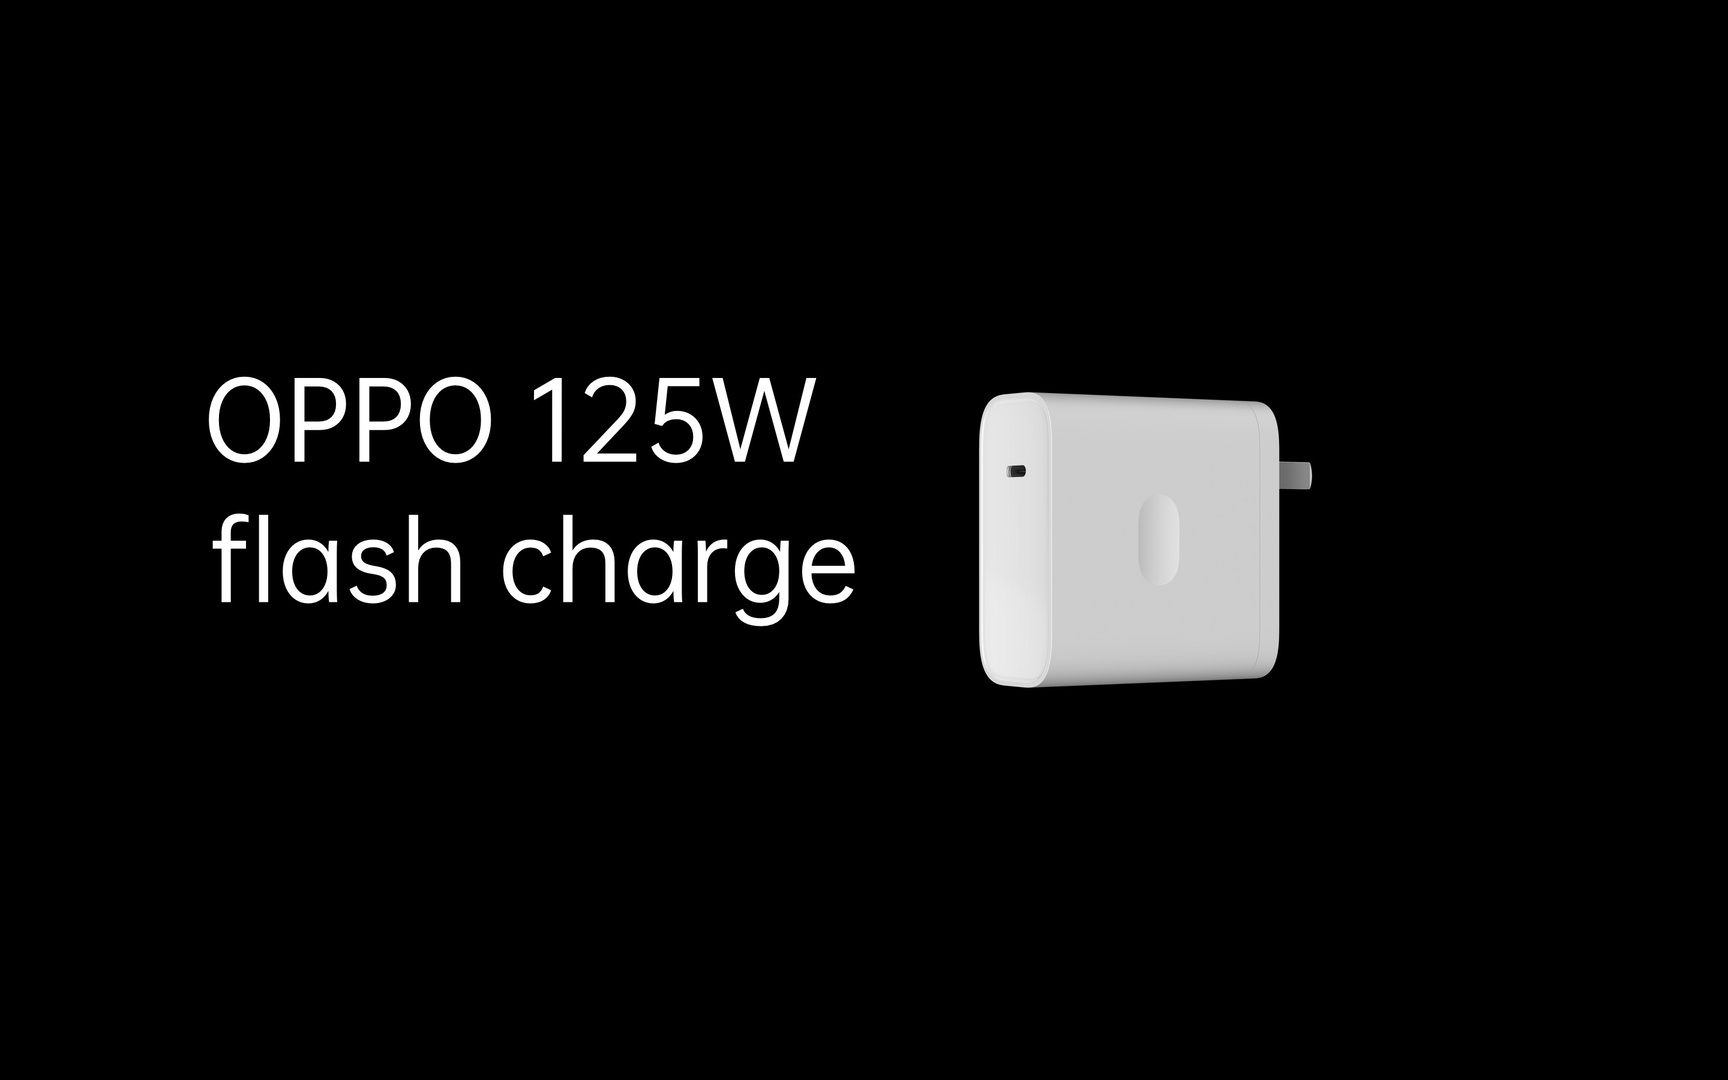 Oppo 125W Flash Charger